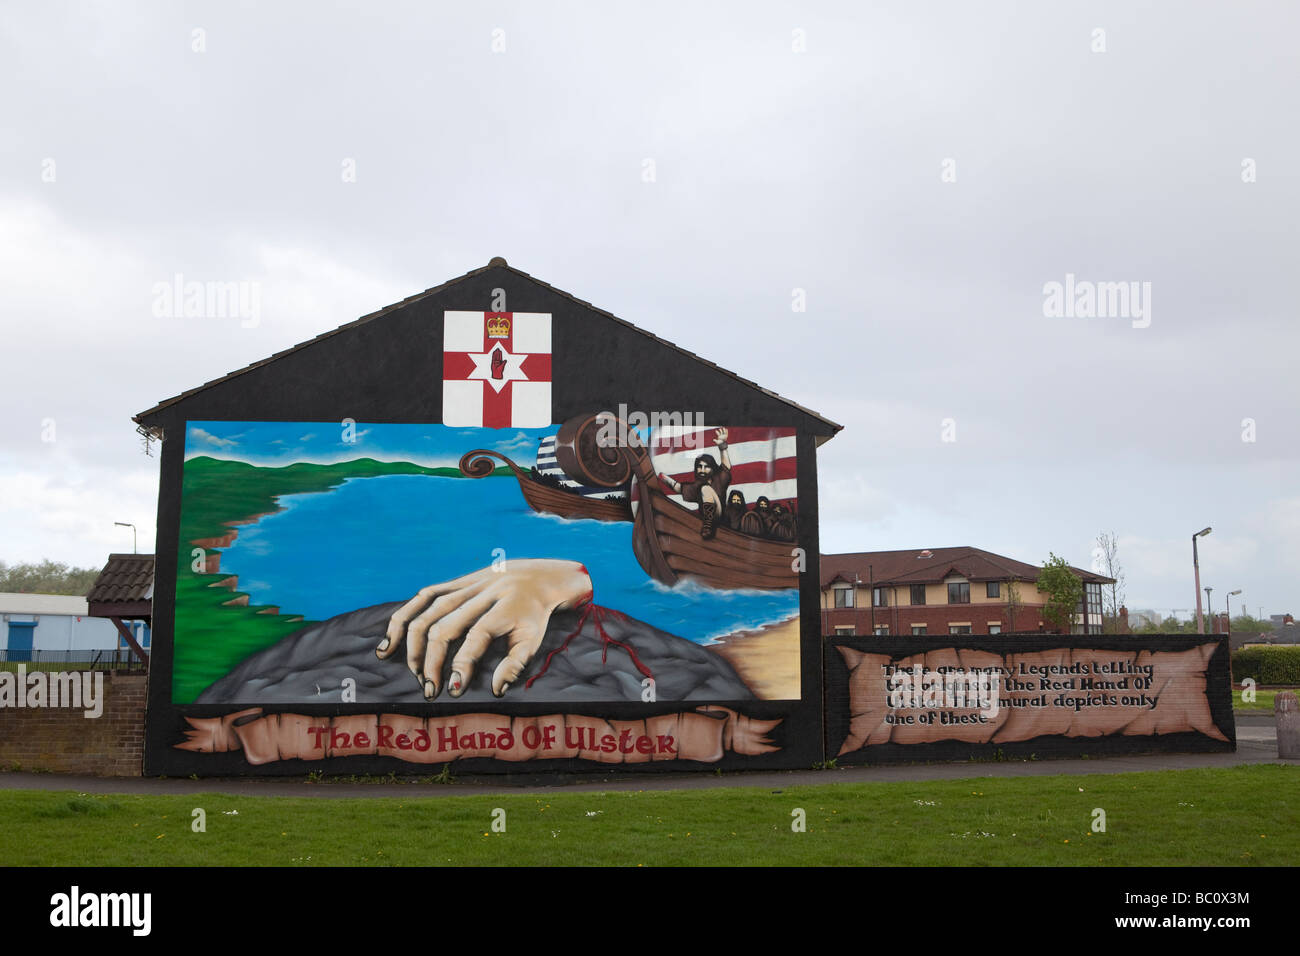 The Red Hand of Ulster in the Shankill quarter, West Belfast, Northern Ireland, United Kingdom - Stock Image